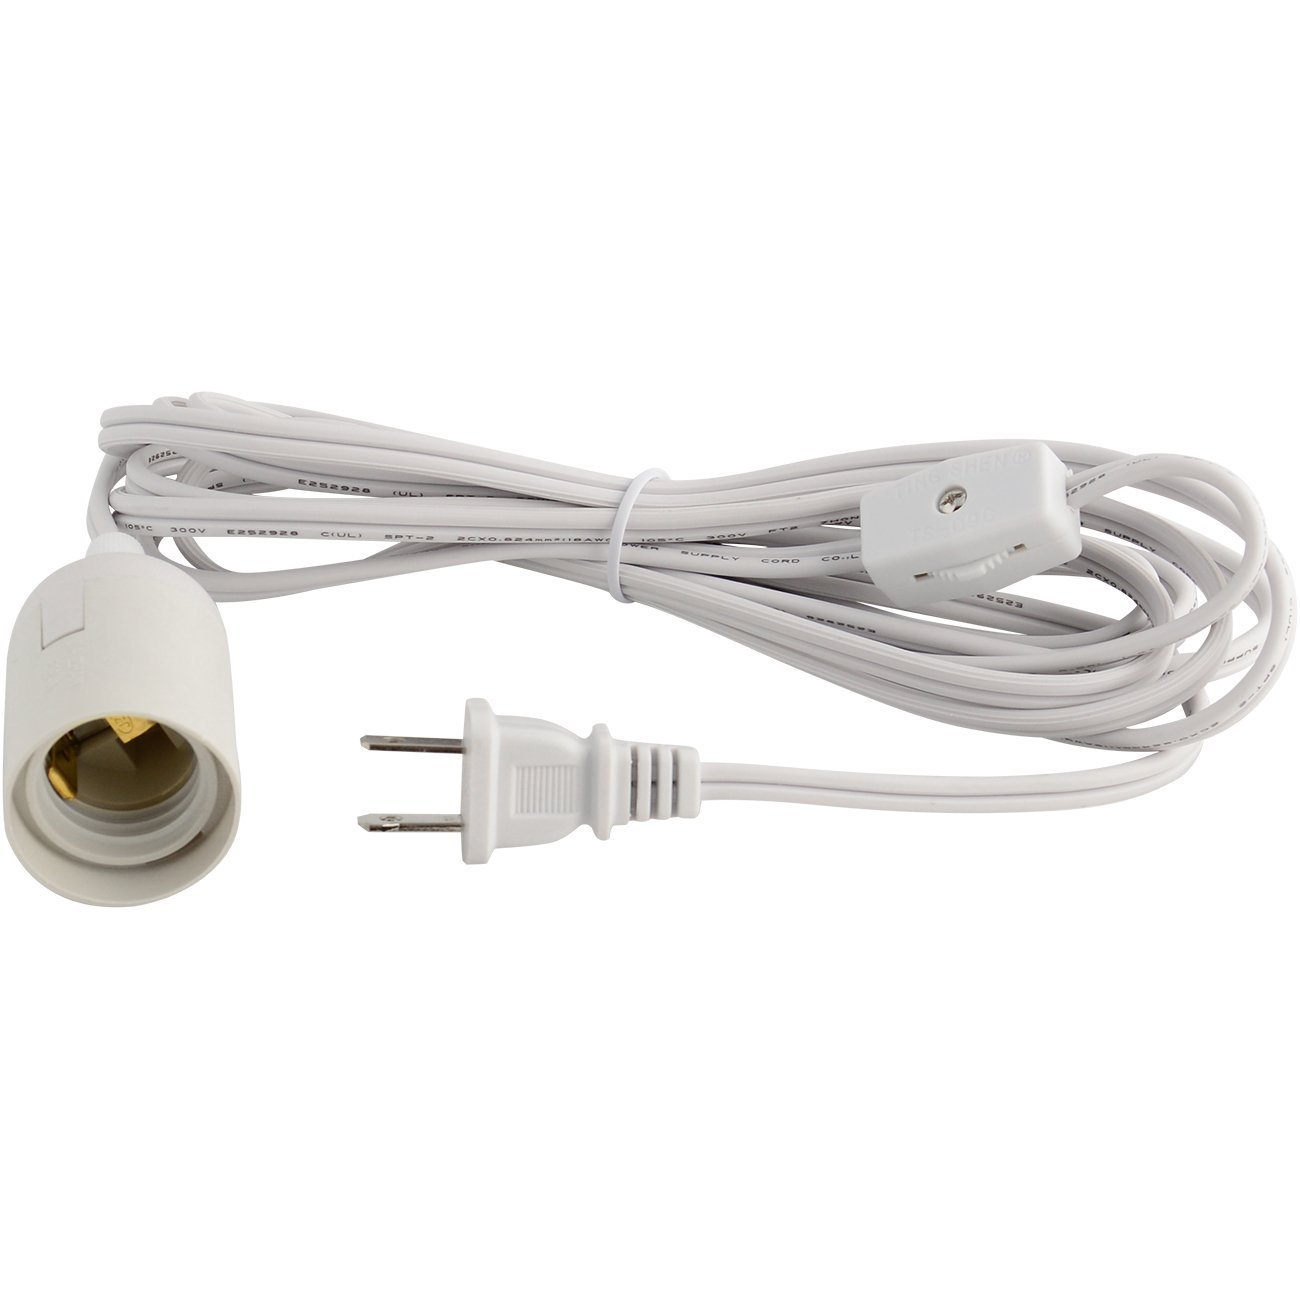 YiLighting - UL-Listed 12feet Hanging Light Socket Extension cord with E12 Candelabra Socket - 2-Prong US AC Power Plugs For Hanging Lantern Plant Growth lights (2, Gear Switch)